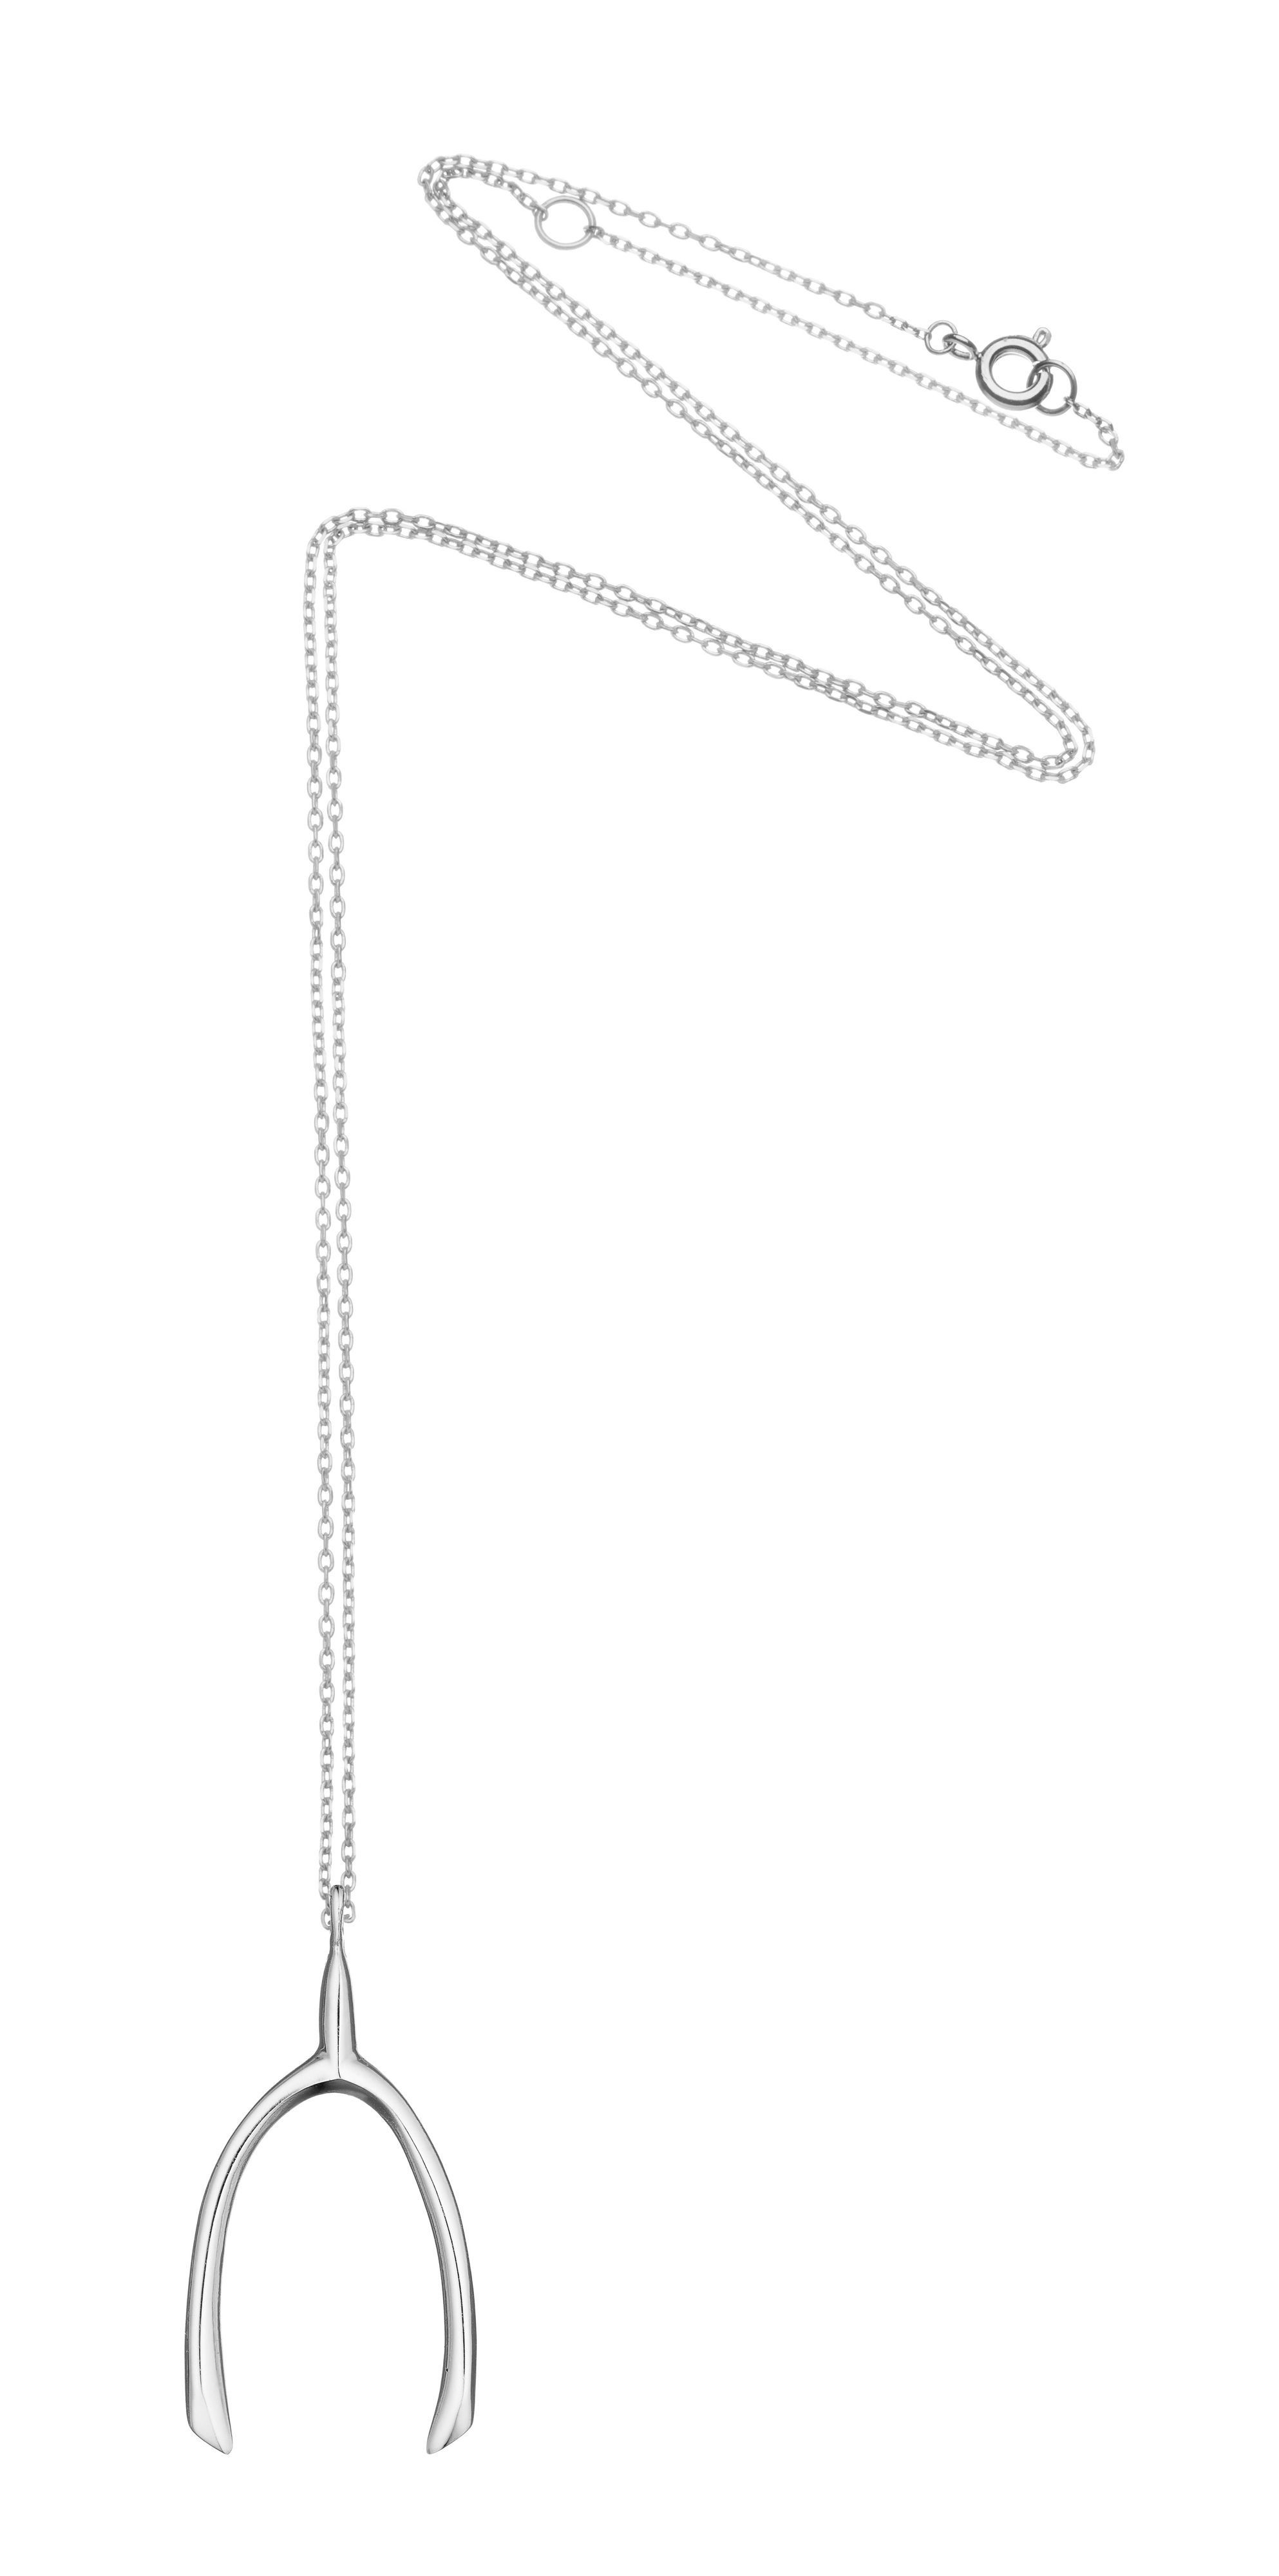 estella bartlett seb1060 wishbone necklace